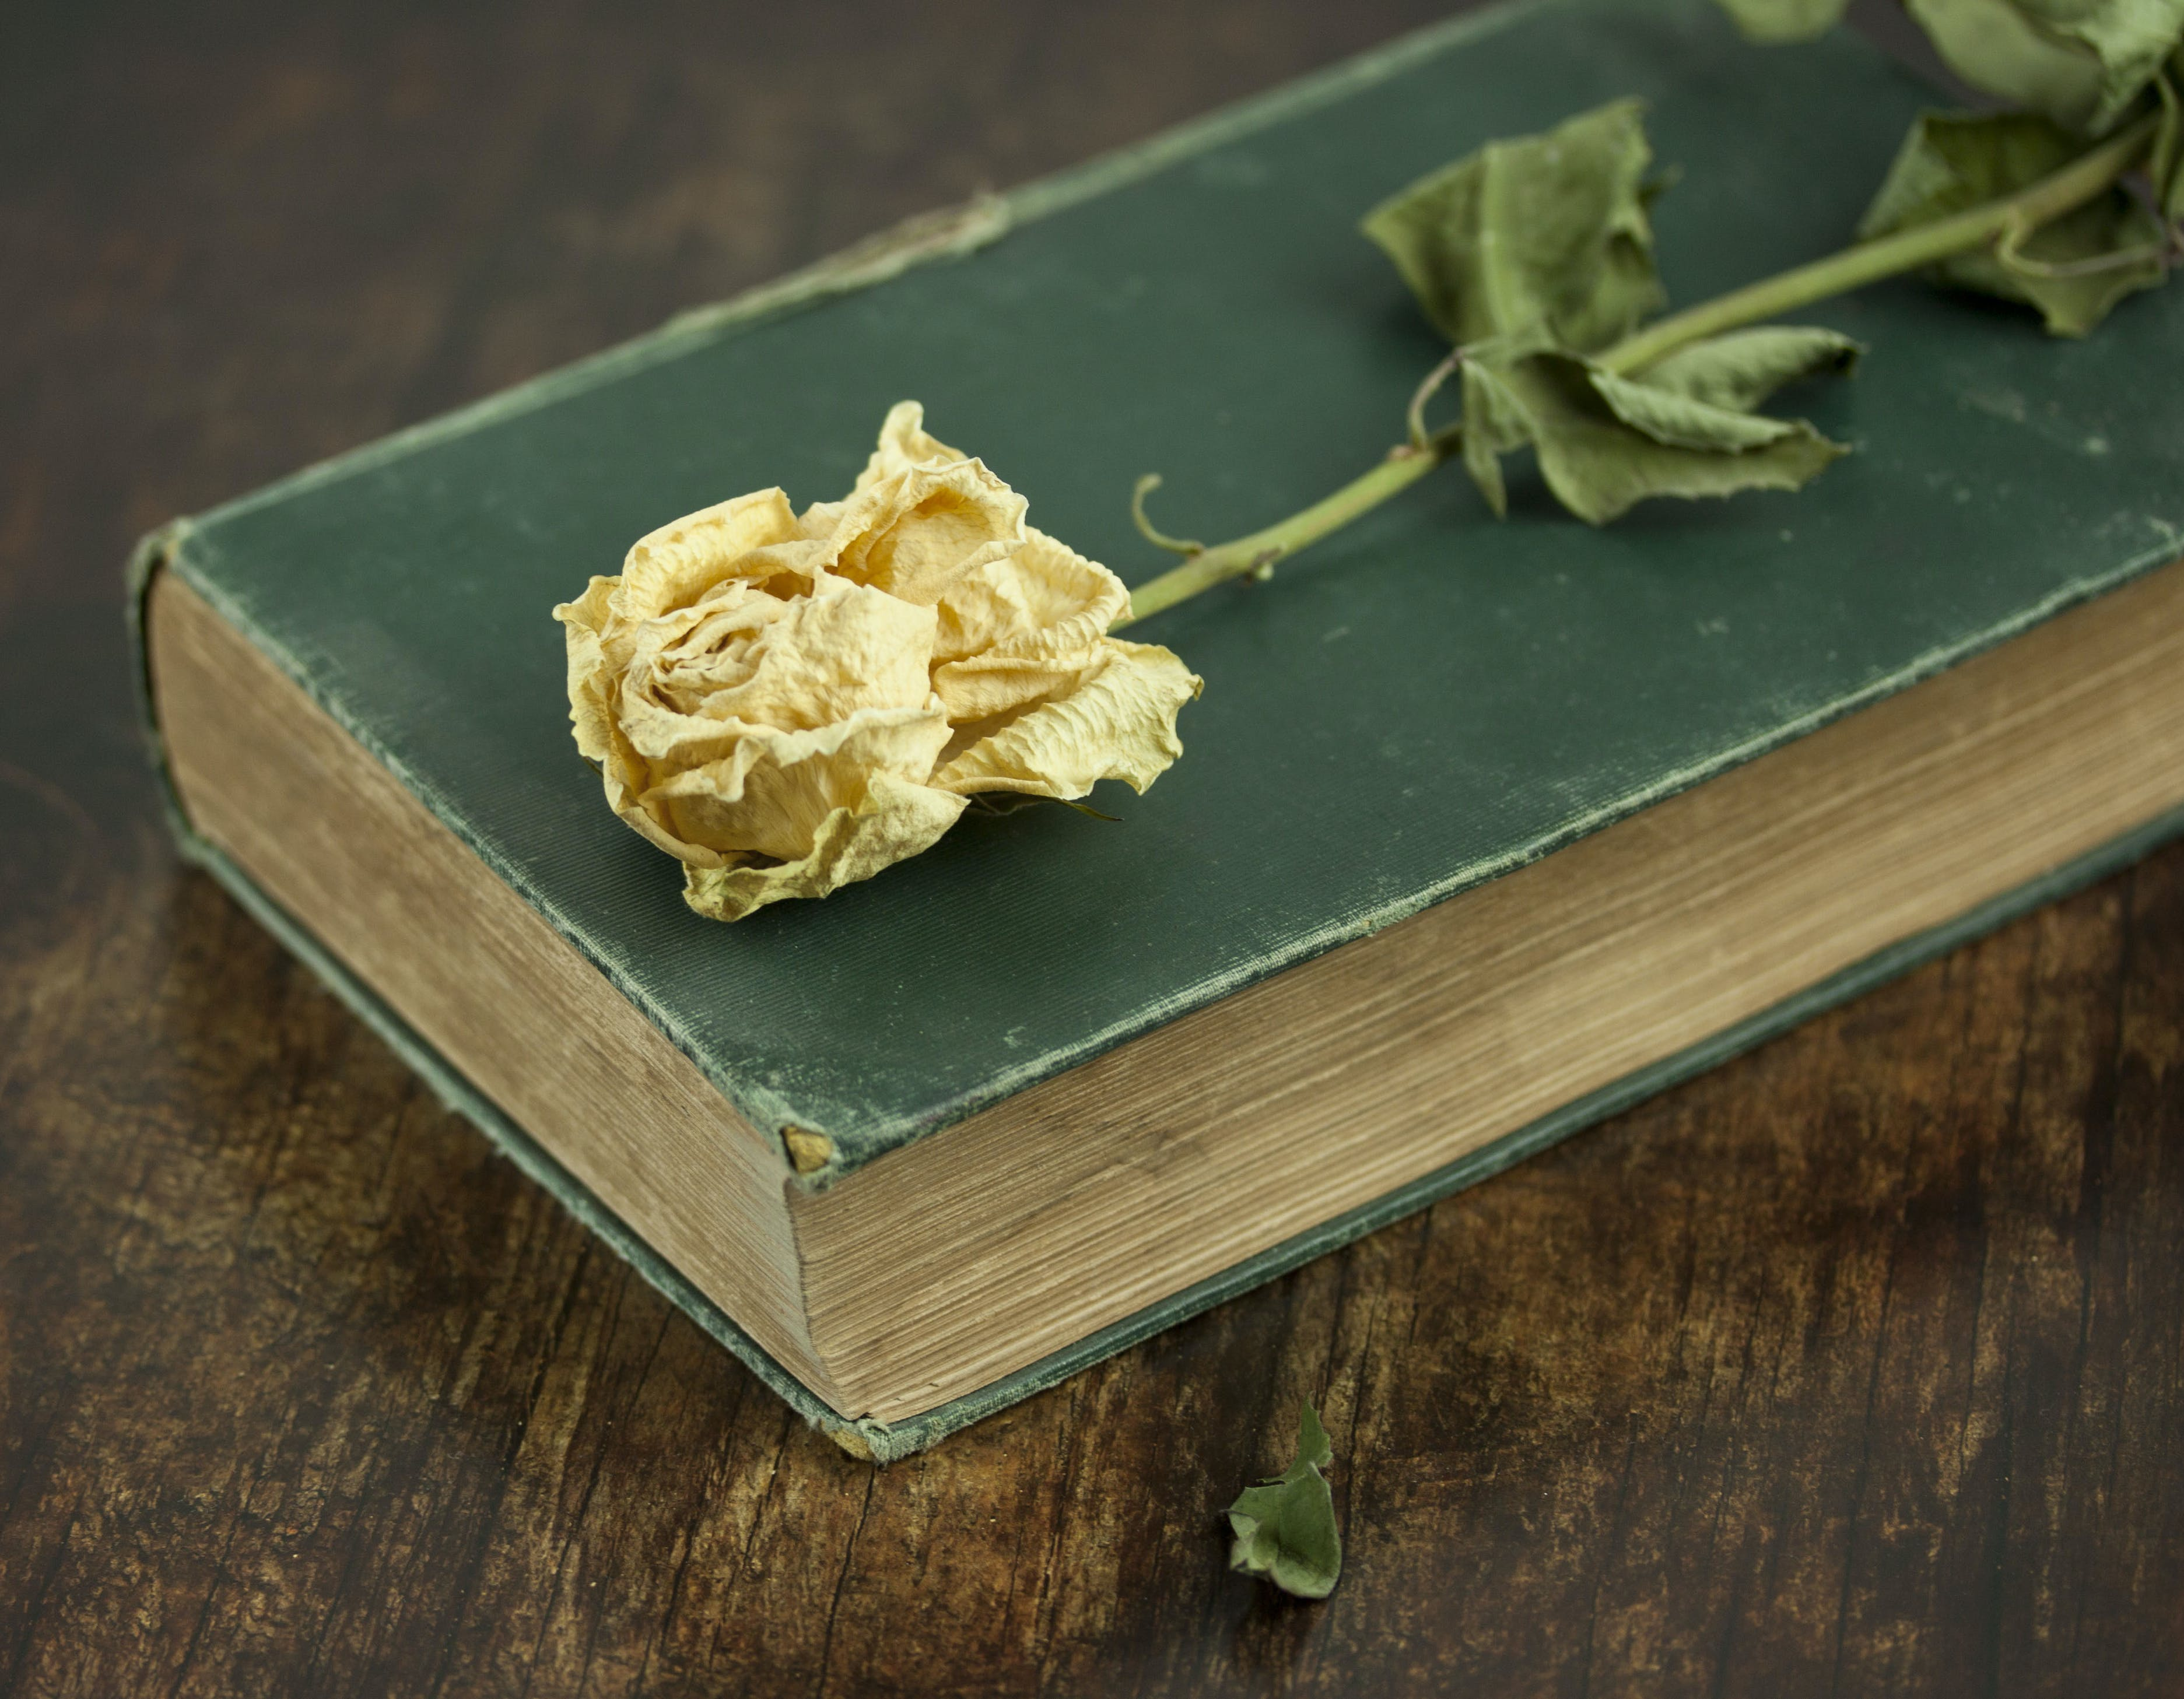 Free stock photo of dry flower, green, old book, still life